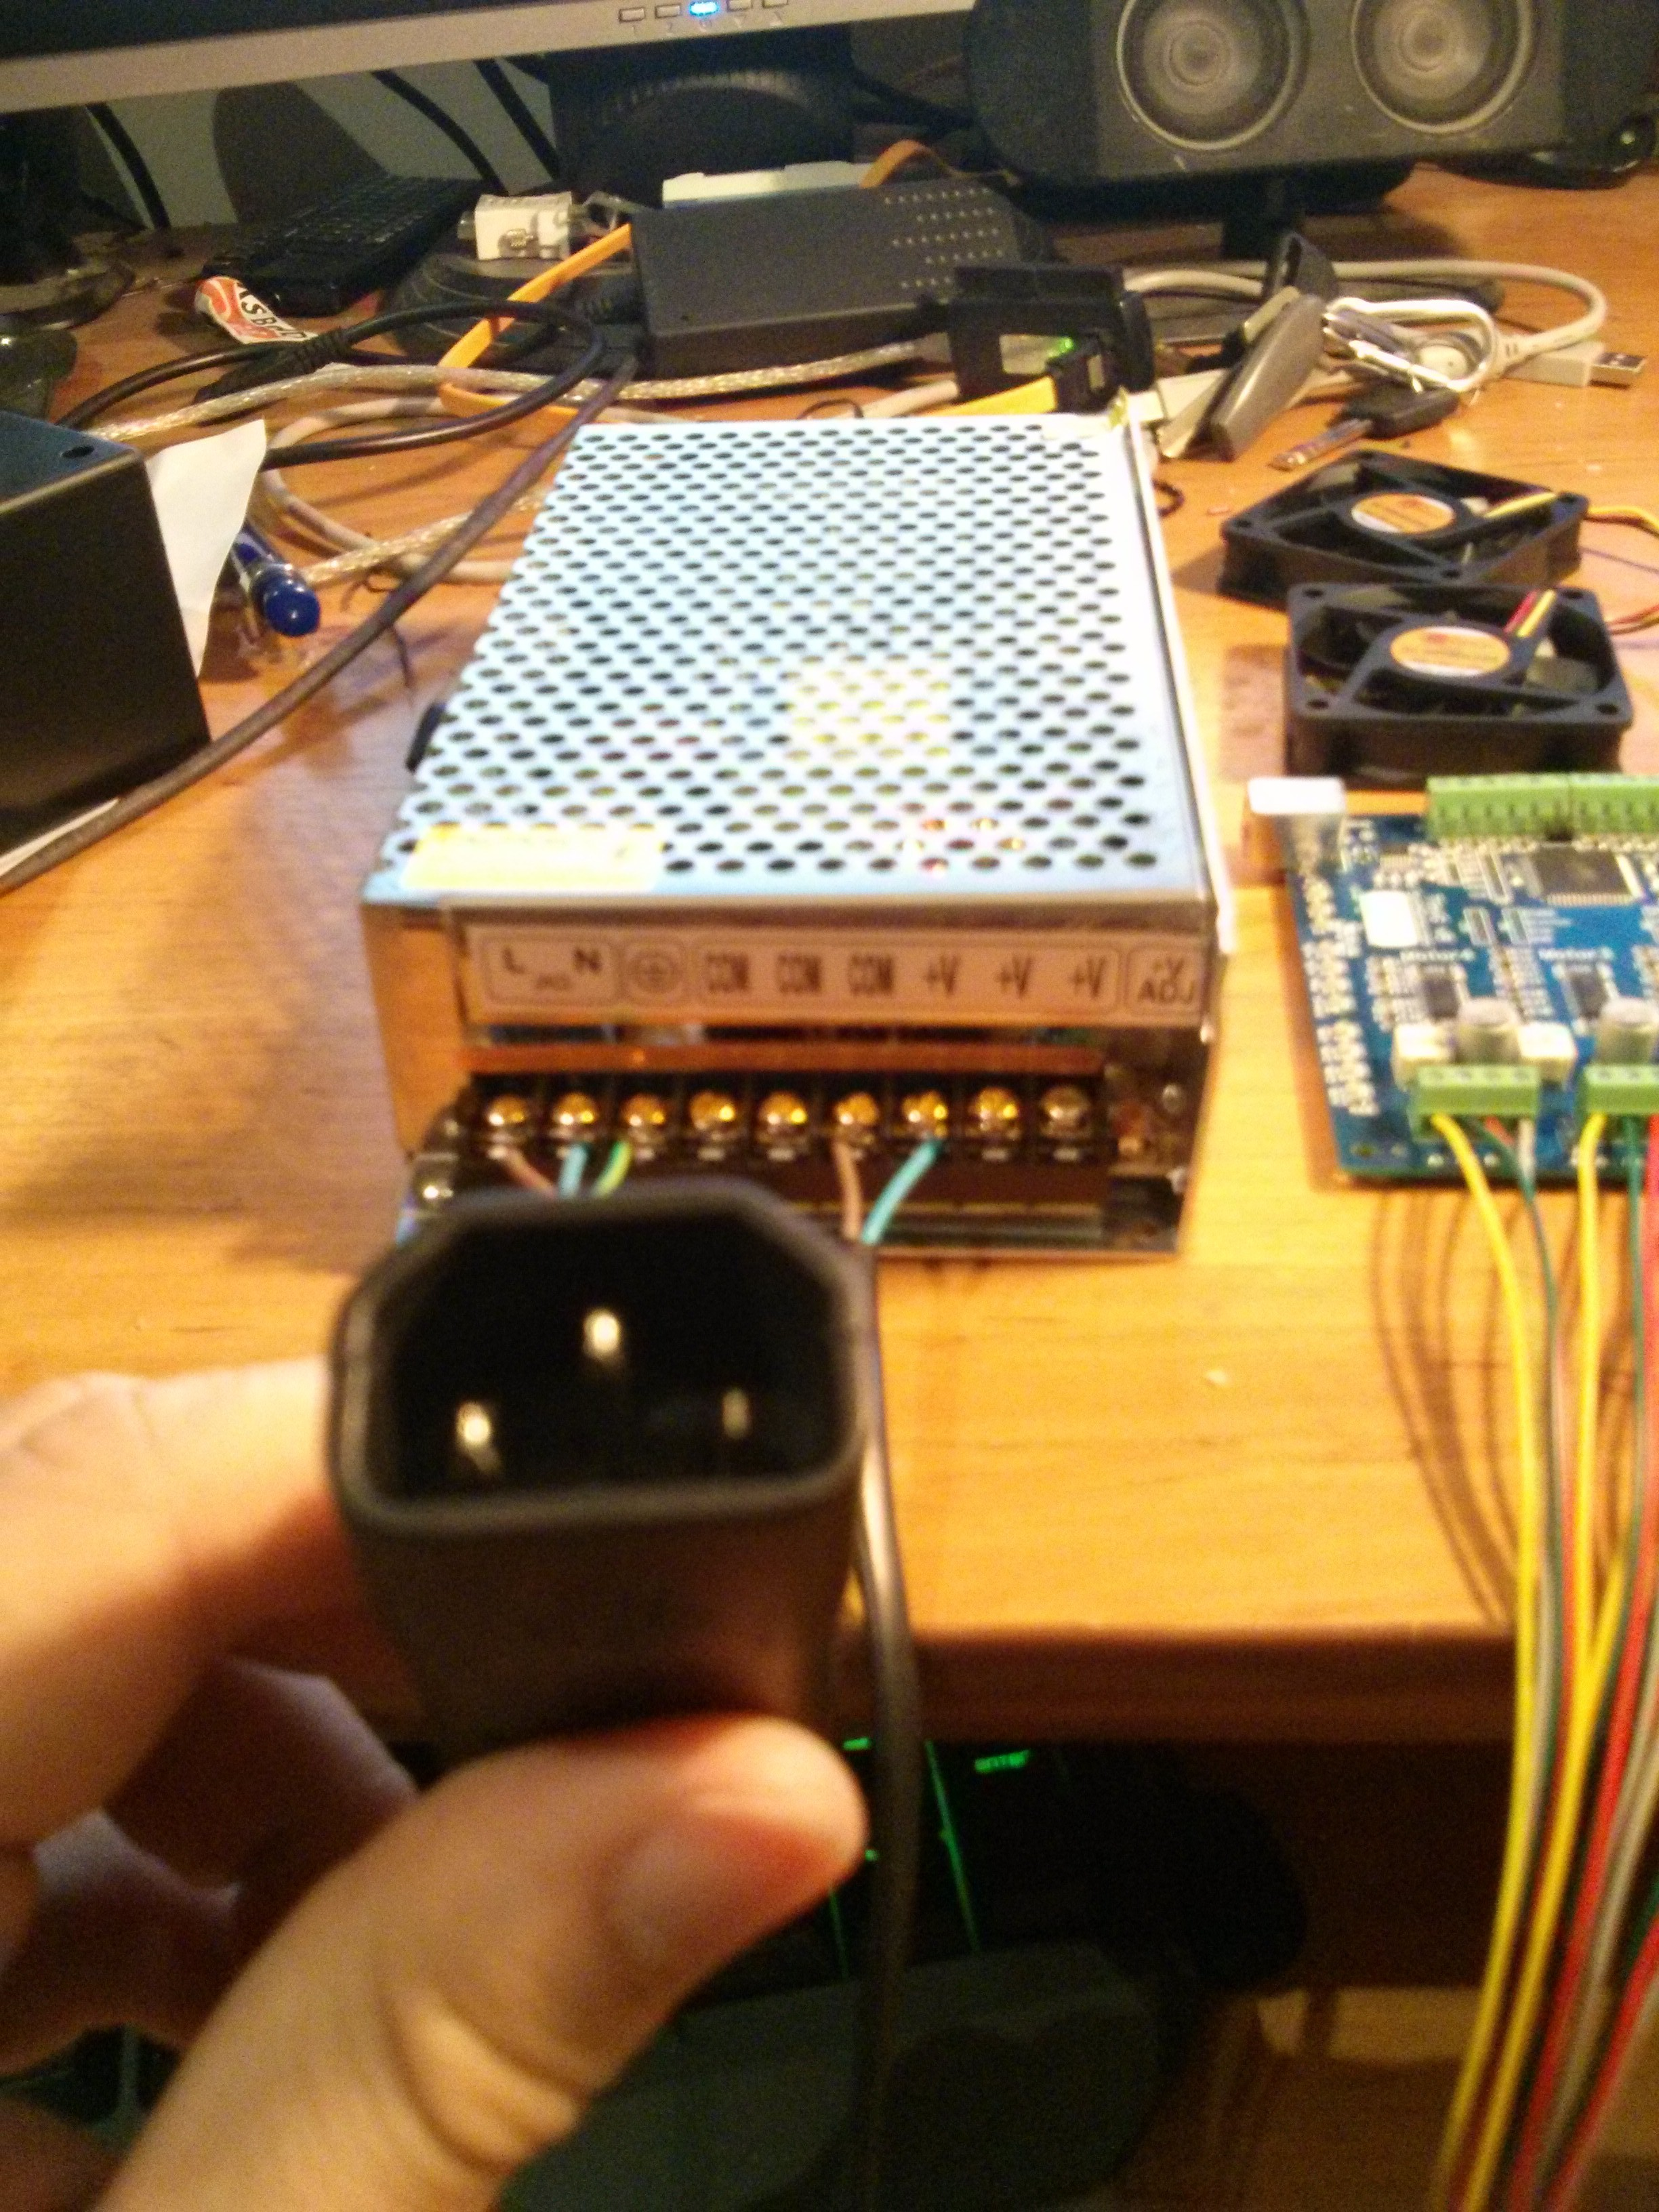 12V Power supply with IEC connector